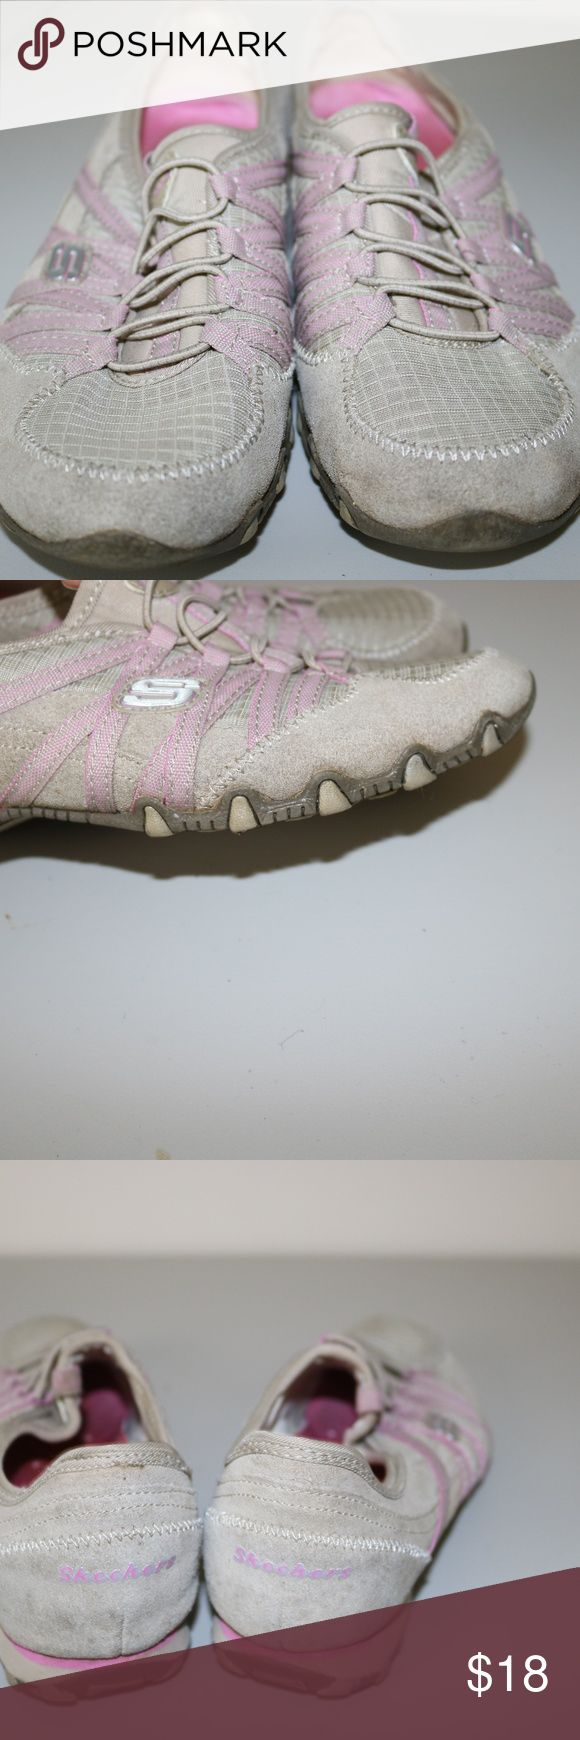 SKETCHERS WOMEN SNEAKERS SIZE 8.5 SKETCHERS SNEAKERS IN A SIZE 8.5  ITEM IS IN GOOD USED CONDITION SKETCHERS Shoes Sneakers